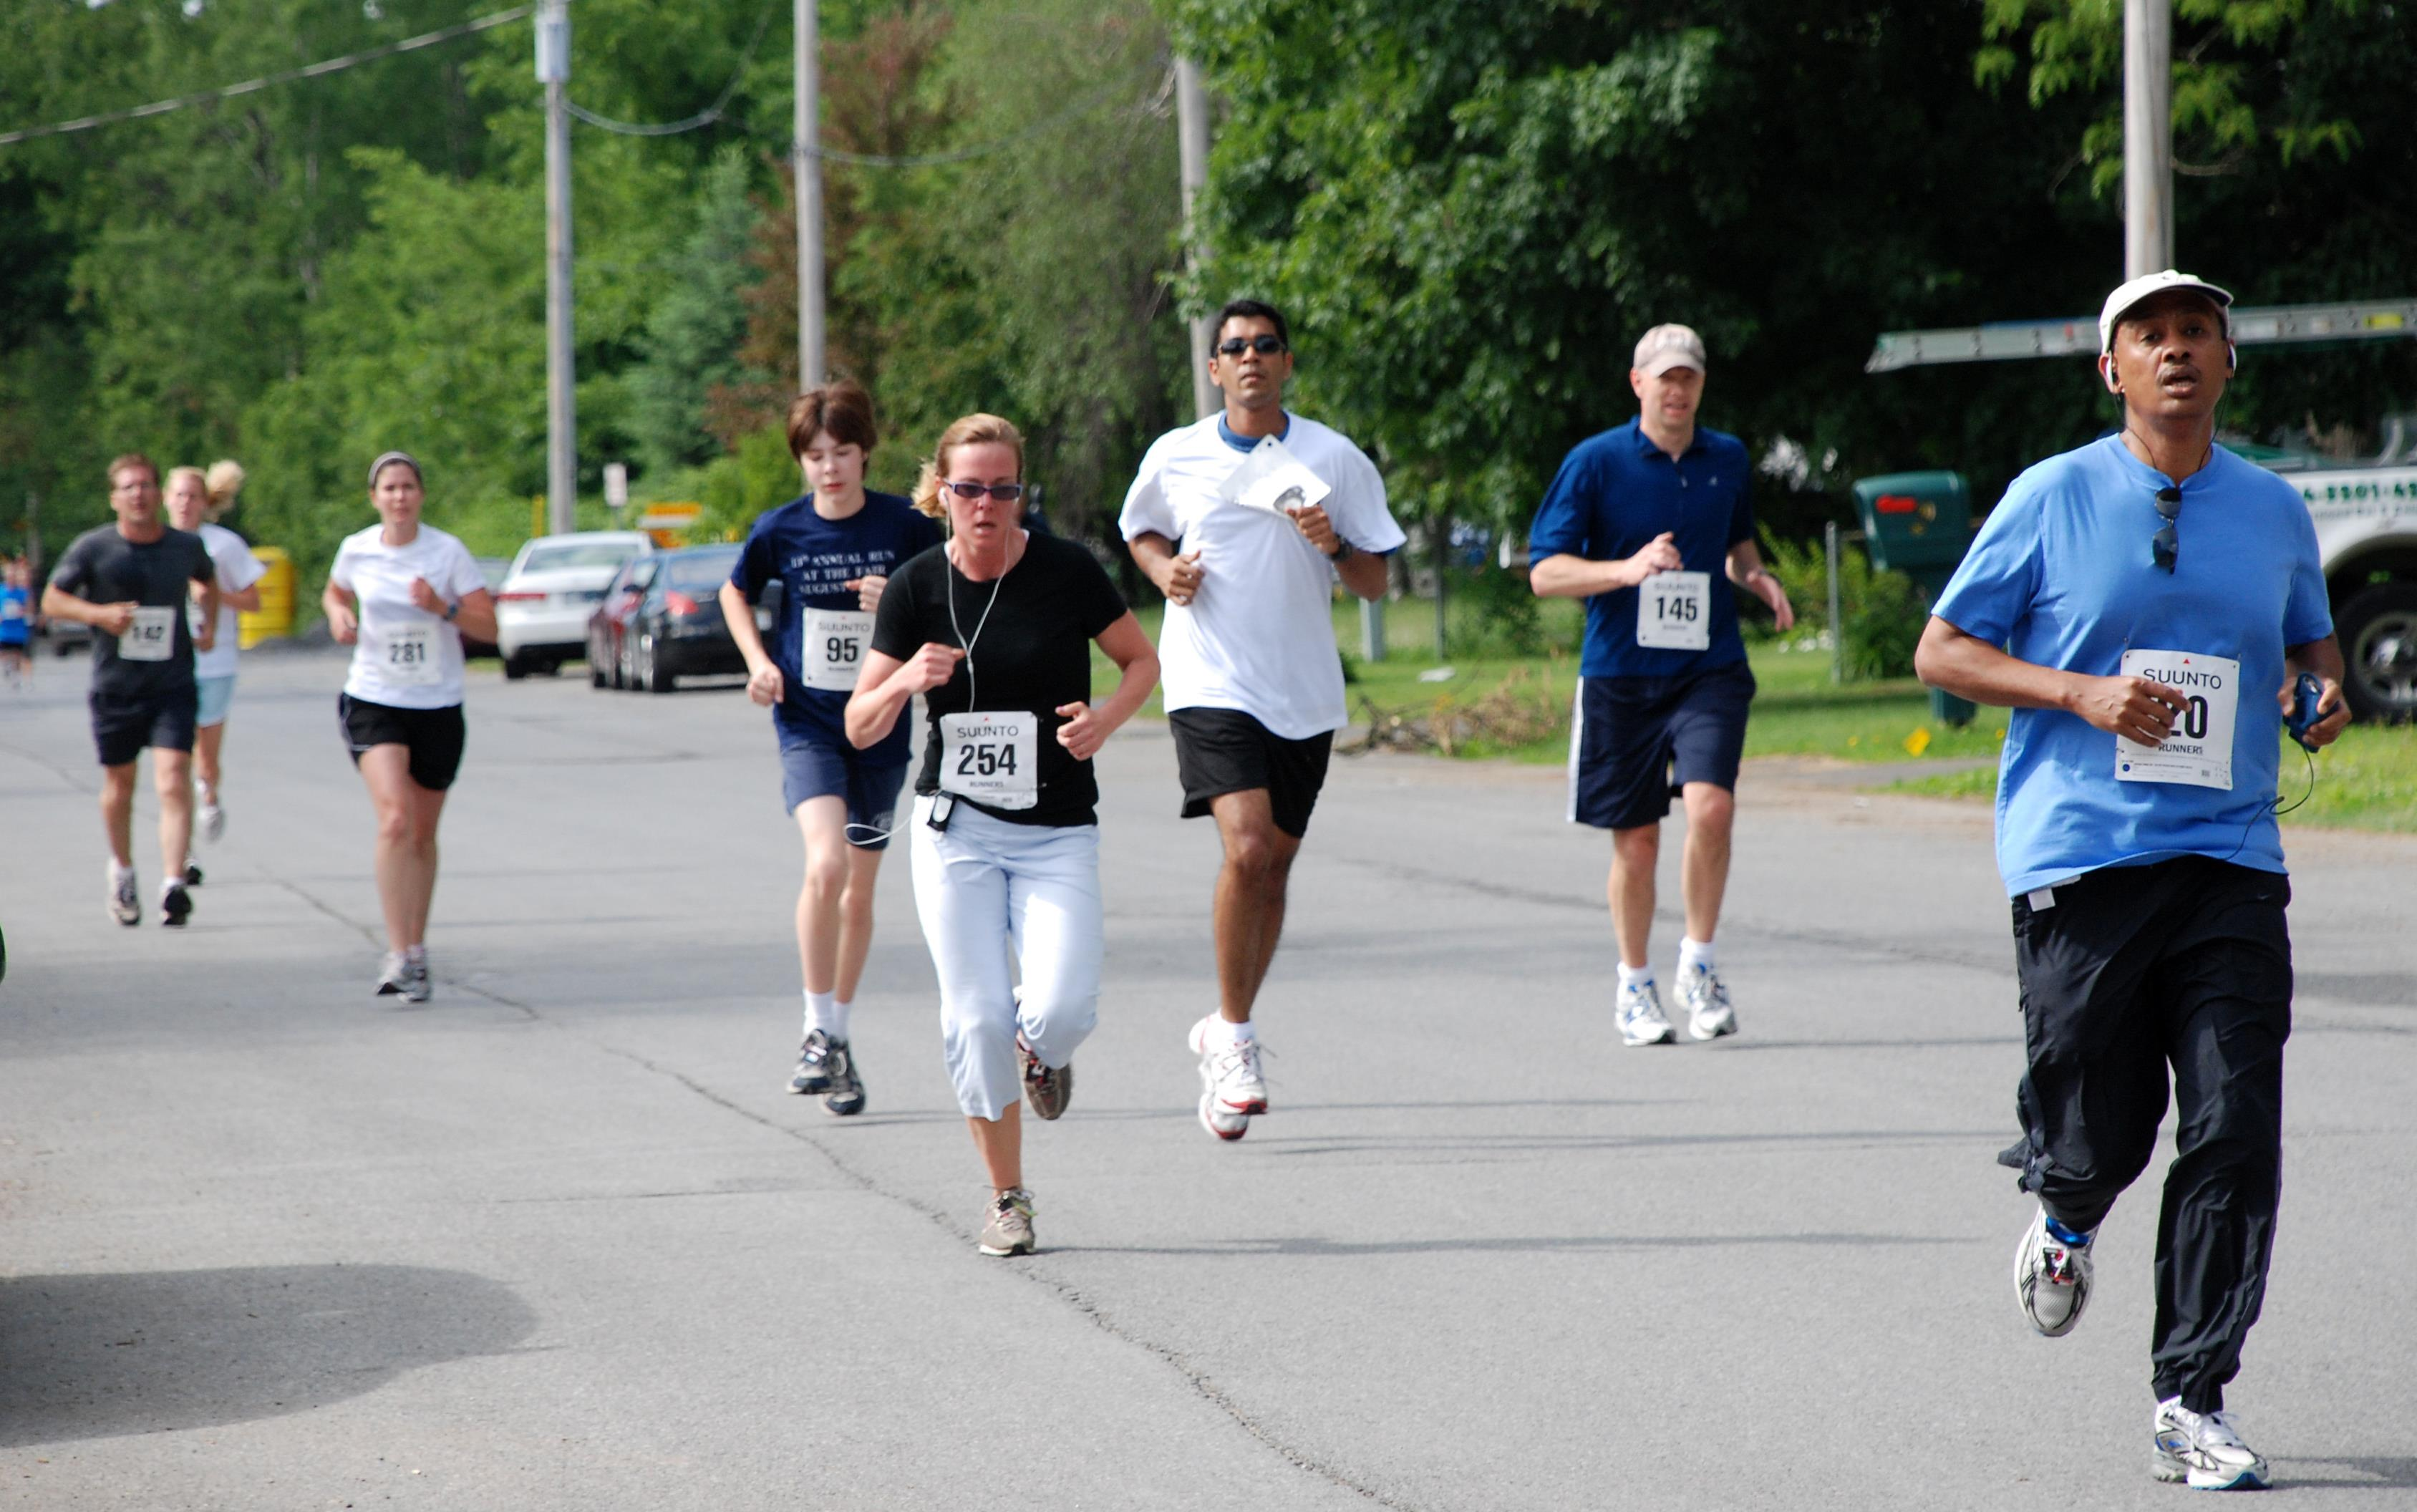 people-running-in-a-race